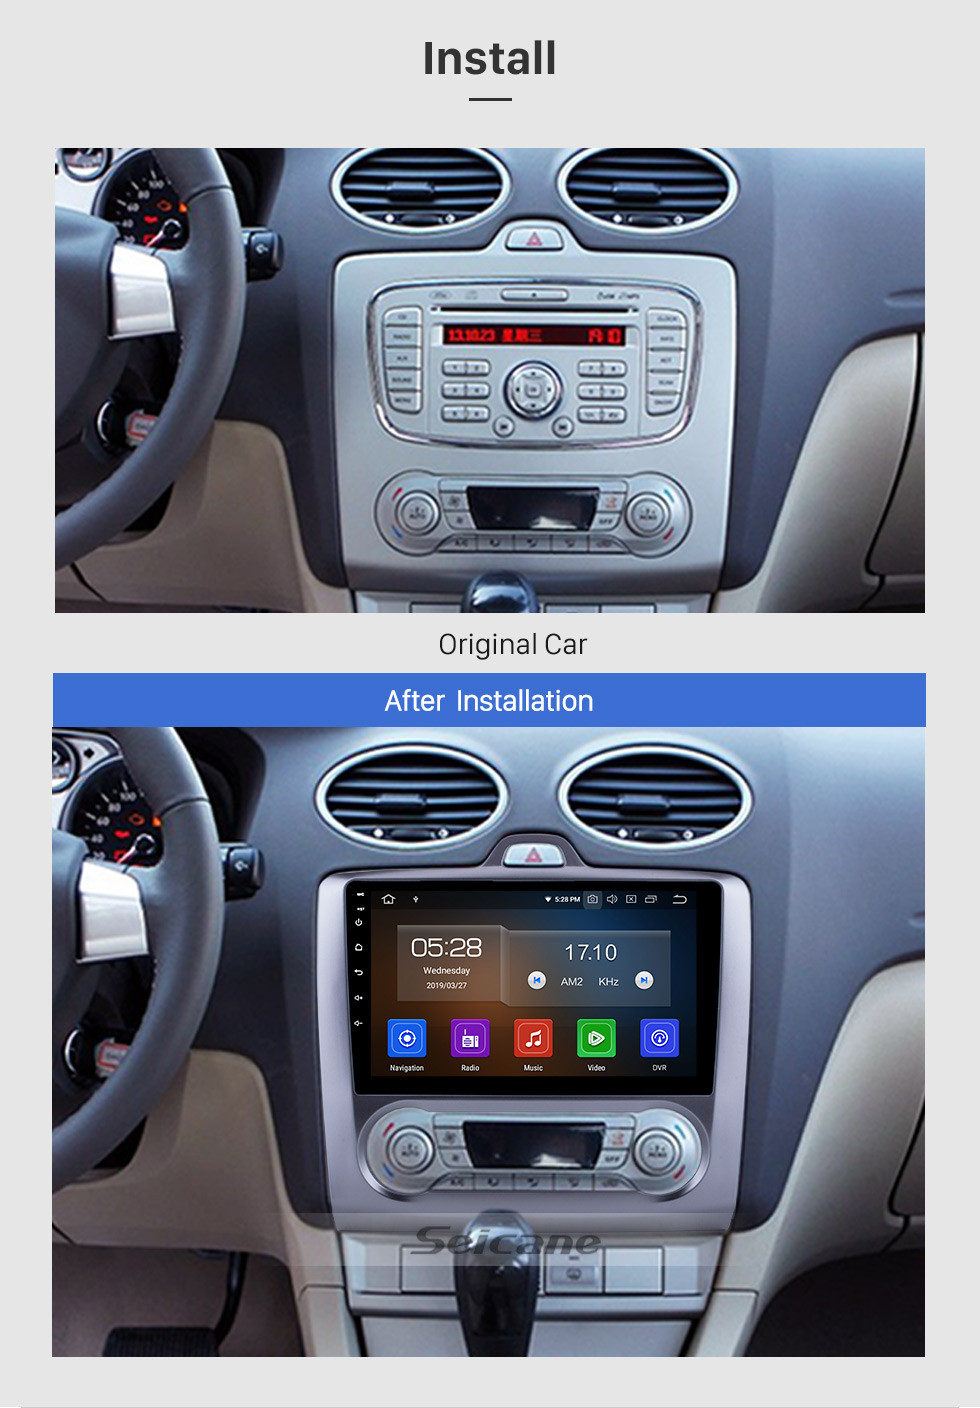 Seicane 9 Inch HD 1024*600 Android 10.0 For 2004-2011 Ford Focus 2 Auto A/C Bluetooth Radio GPS Navigation Car Stereo Touchscreen Mirror Link USB RDS DAB+ Steering Wheel Control